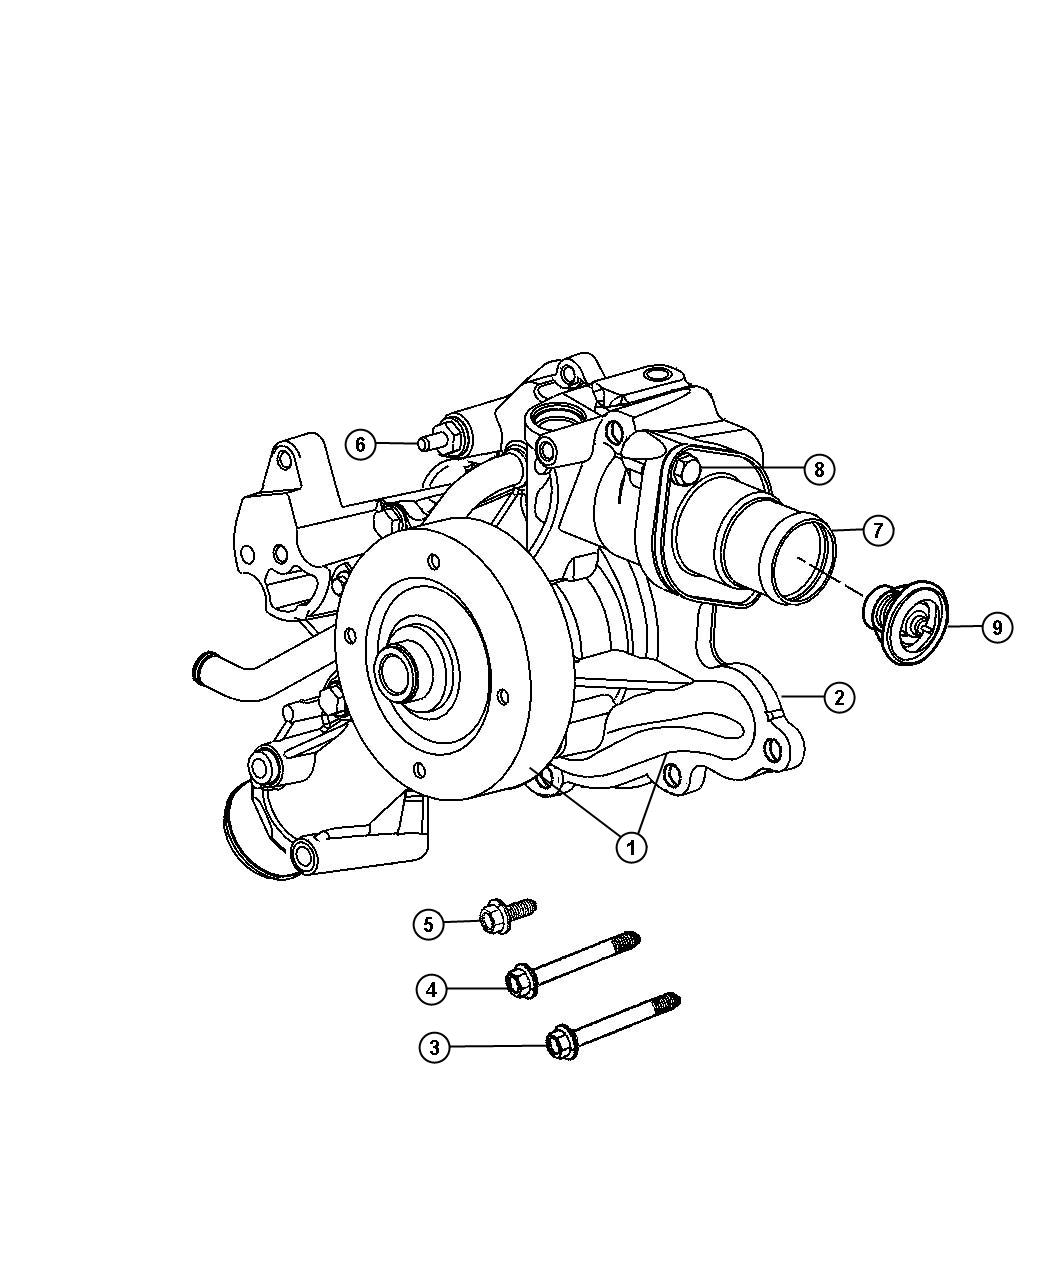 Chrysler Sebring 2 4l Engine Diagram also Discussion T27237 ds571752 also 2000 Hyundai Elantra Wiring Diagram as well Replace Blend Door Motor likewise 300m Transaxle Diagrams. on 2006 pt cruiser repair manual